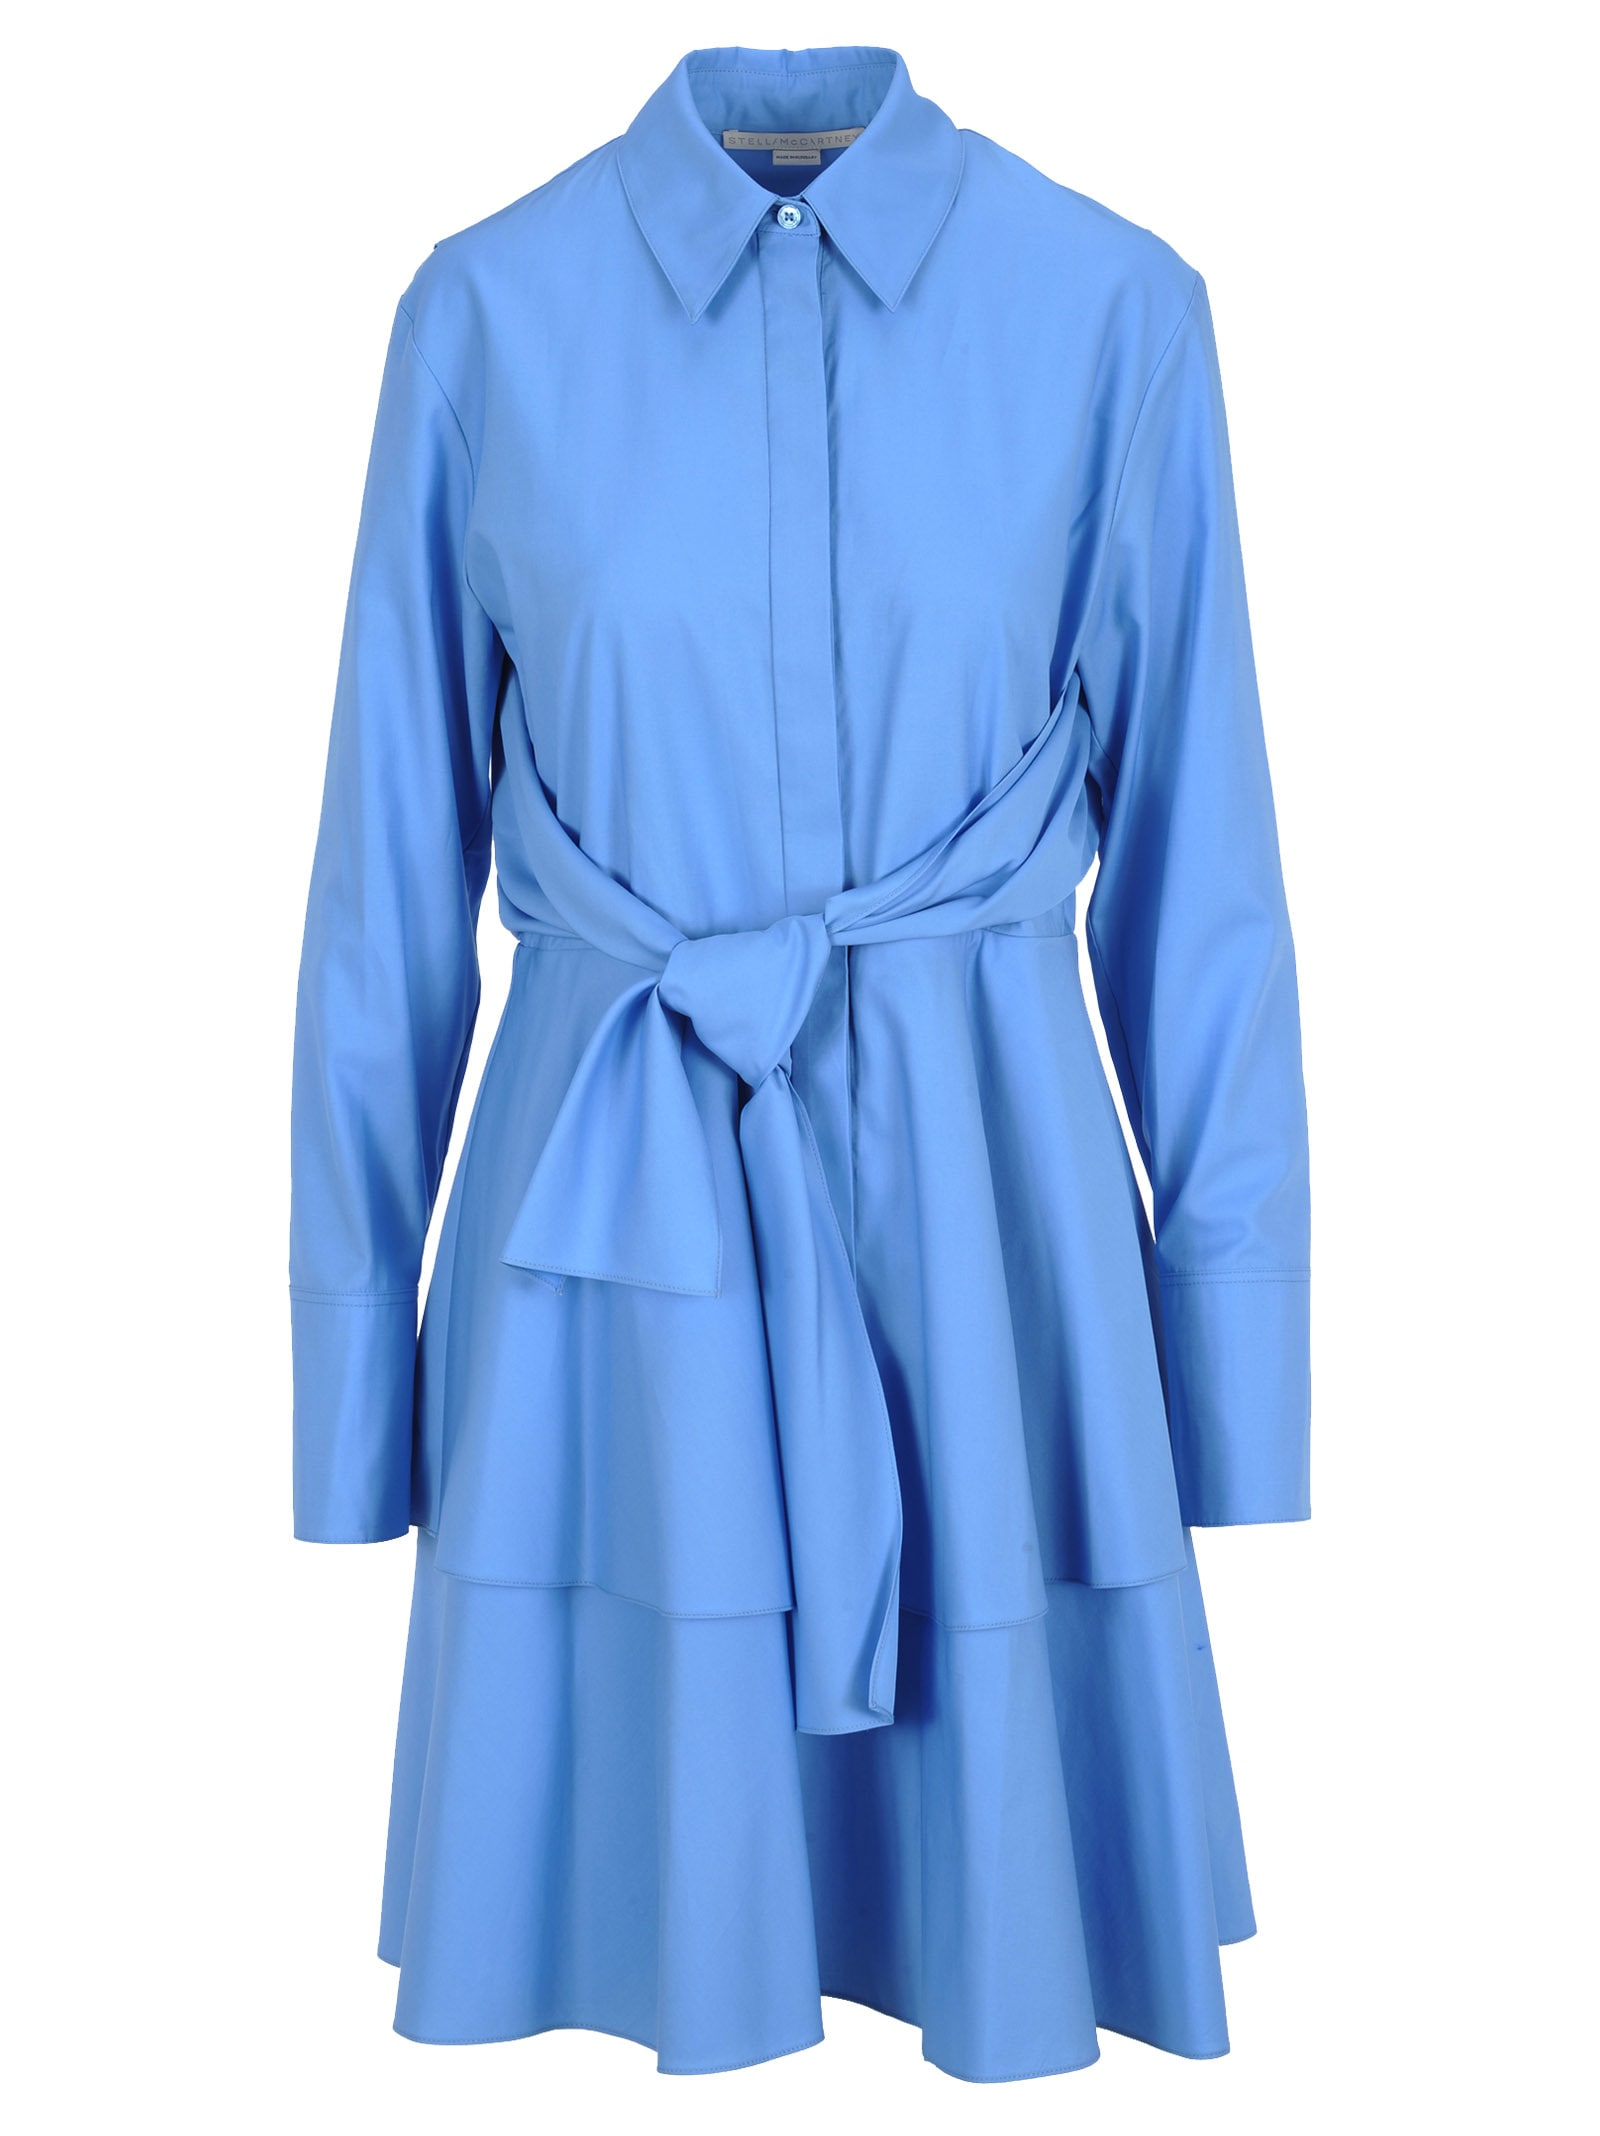 Photo of  Stella Mccartney Stella Mccartney Ruffle Shirt Dress- shop Stella McCartney  online sales